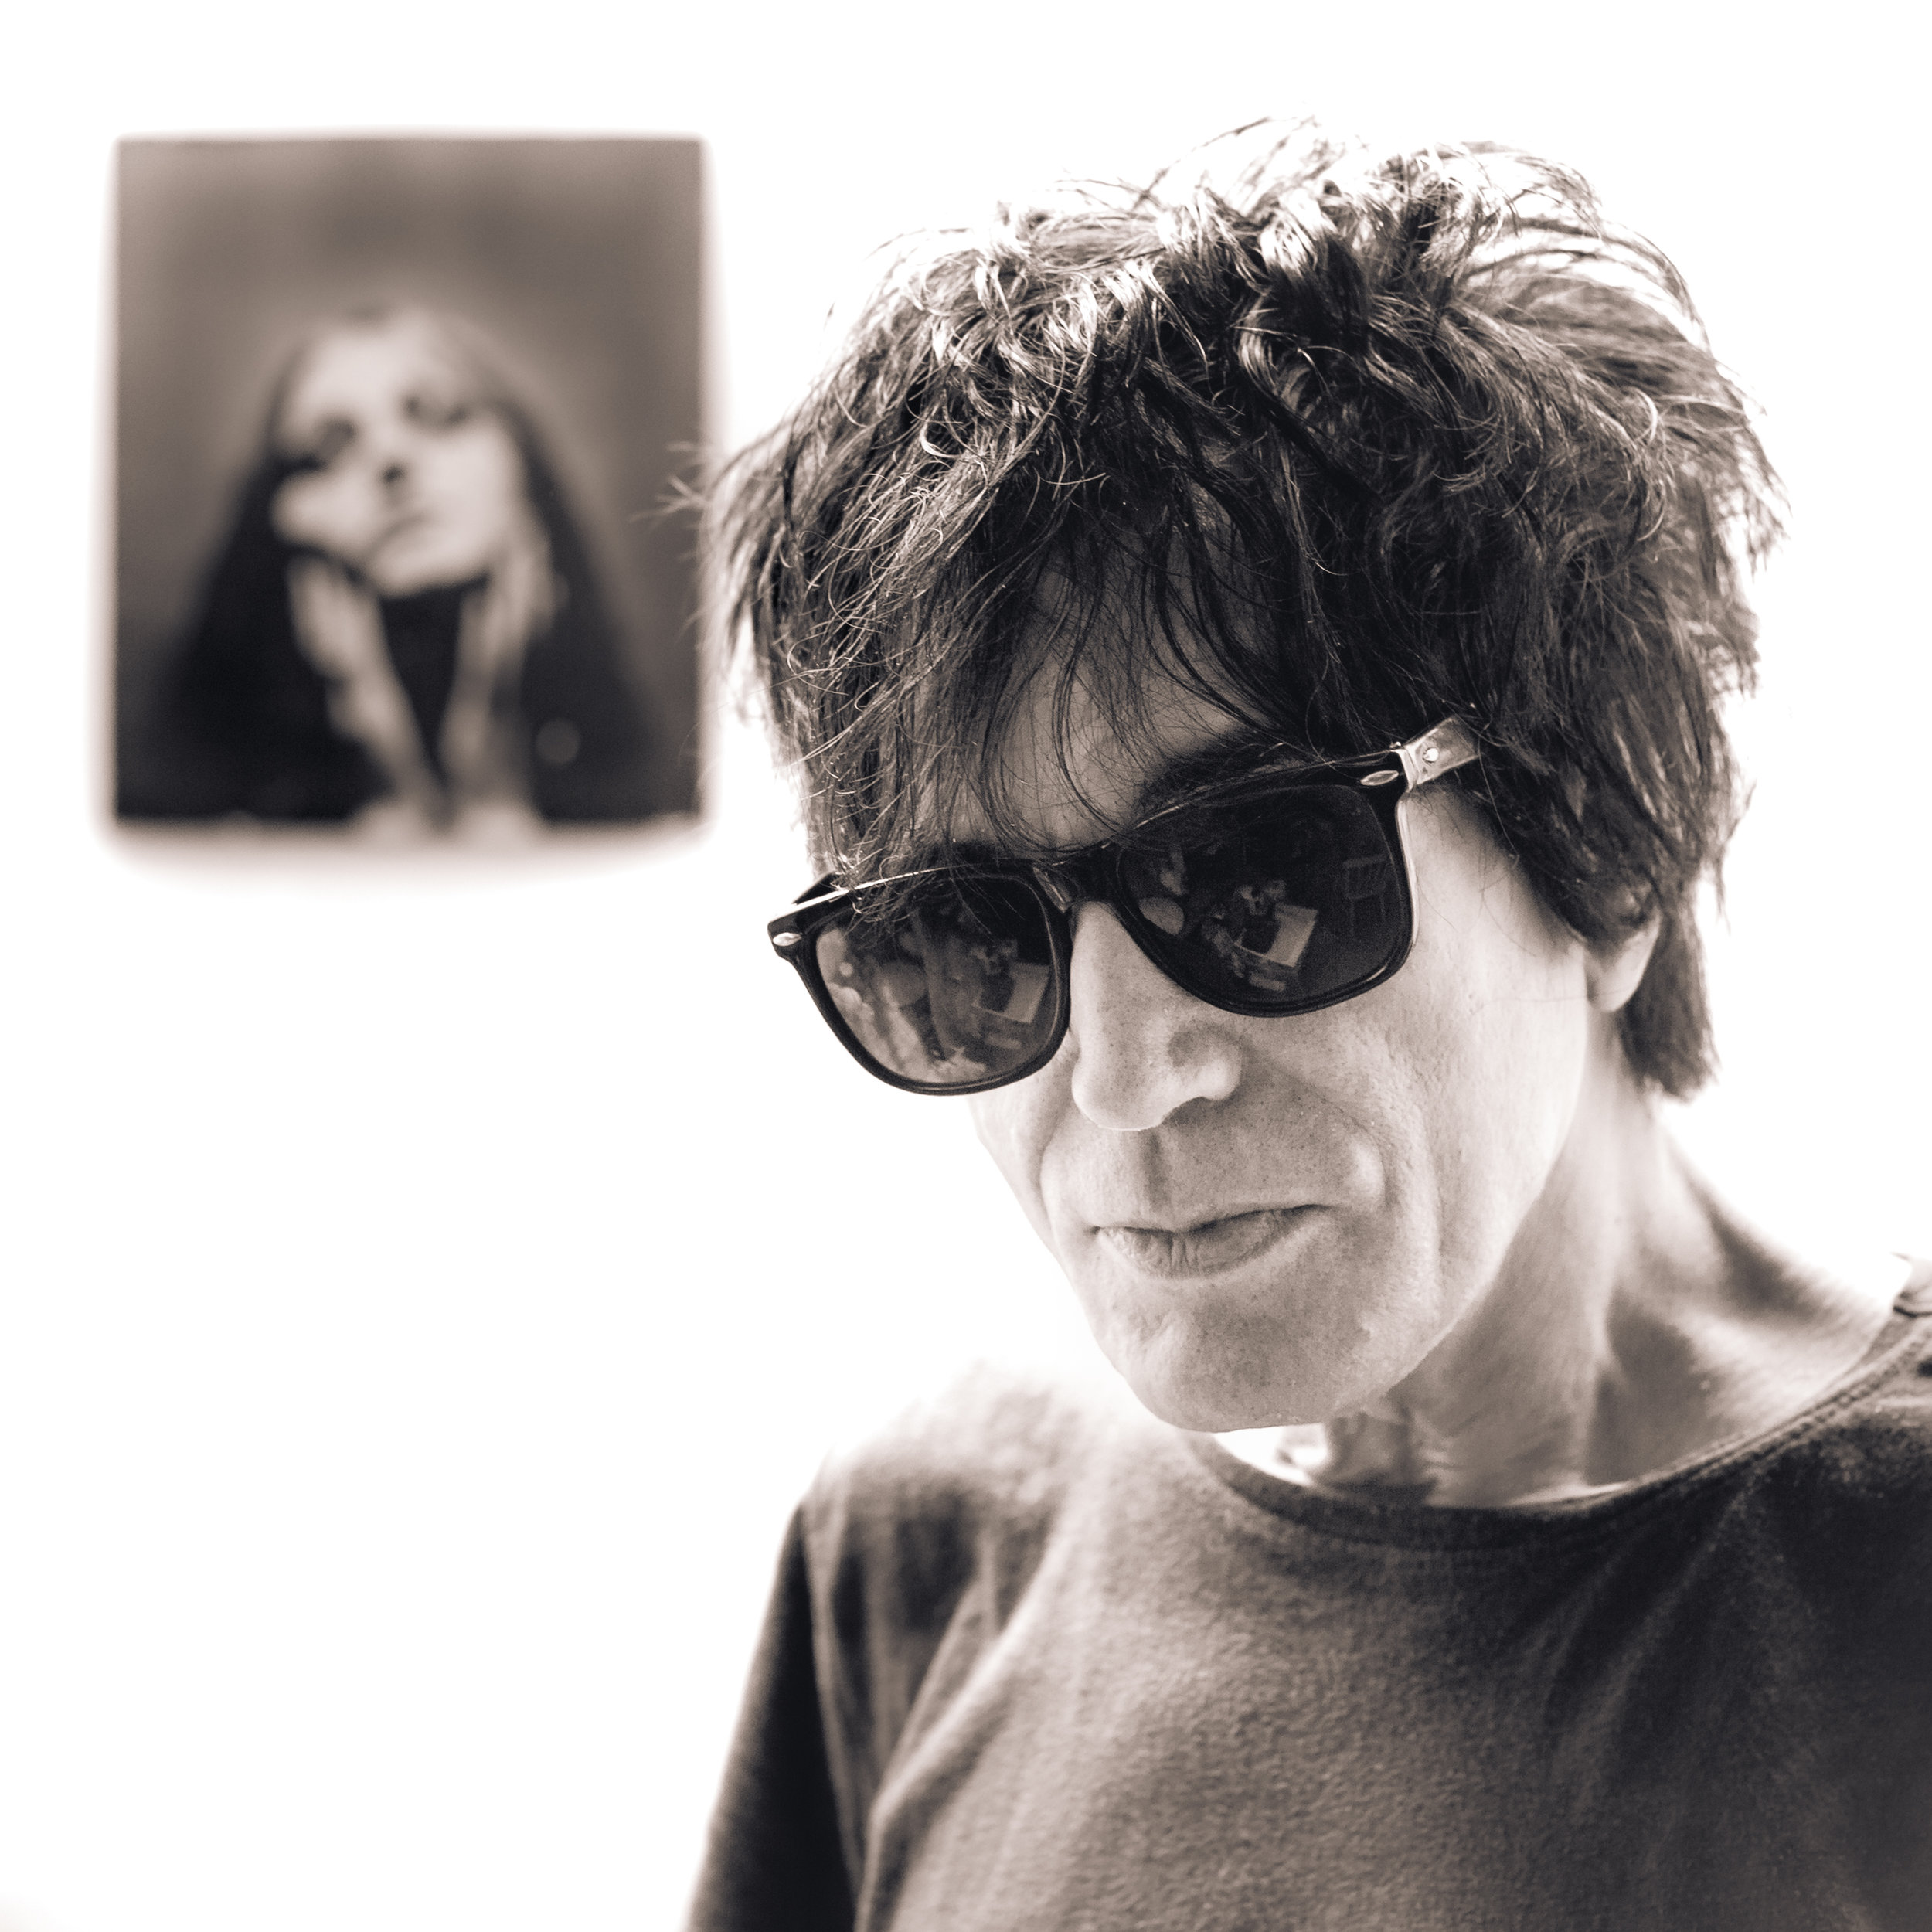 Peter Perrett, The Only Ones